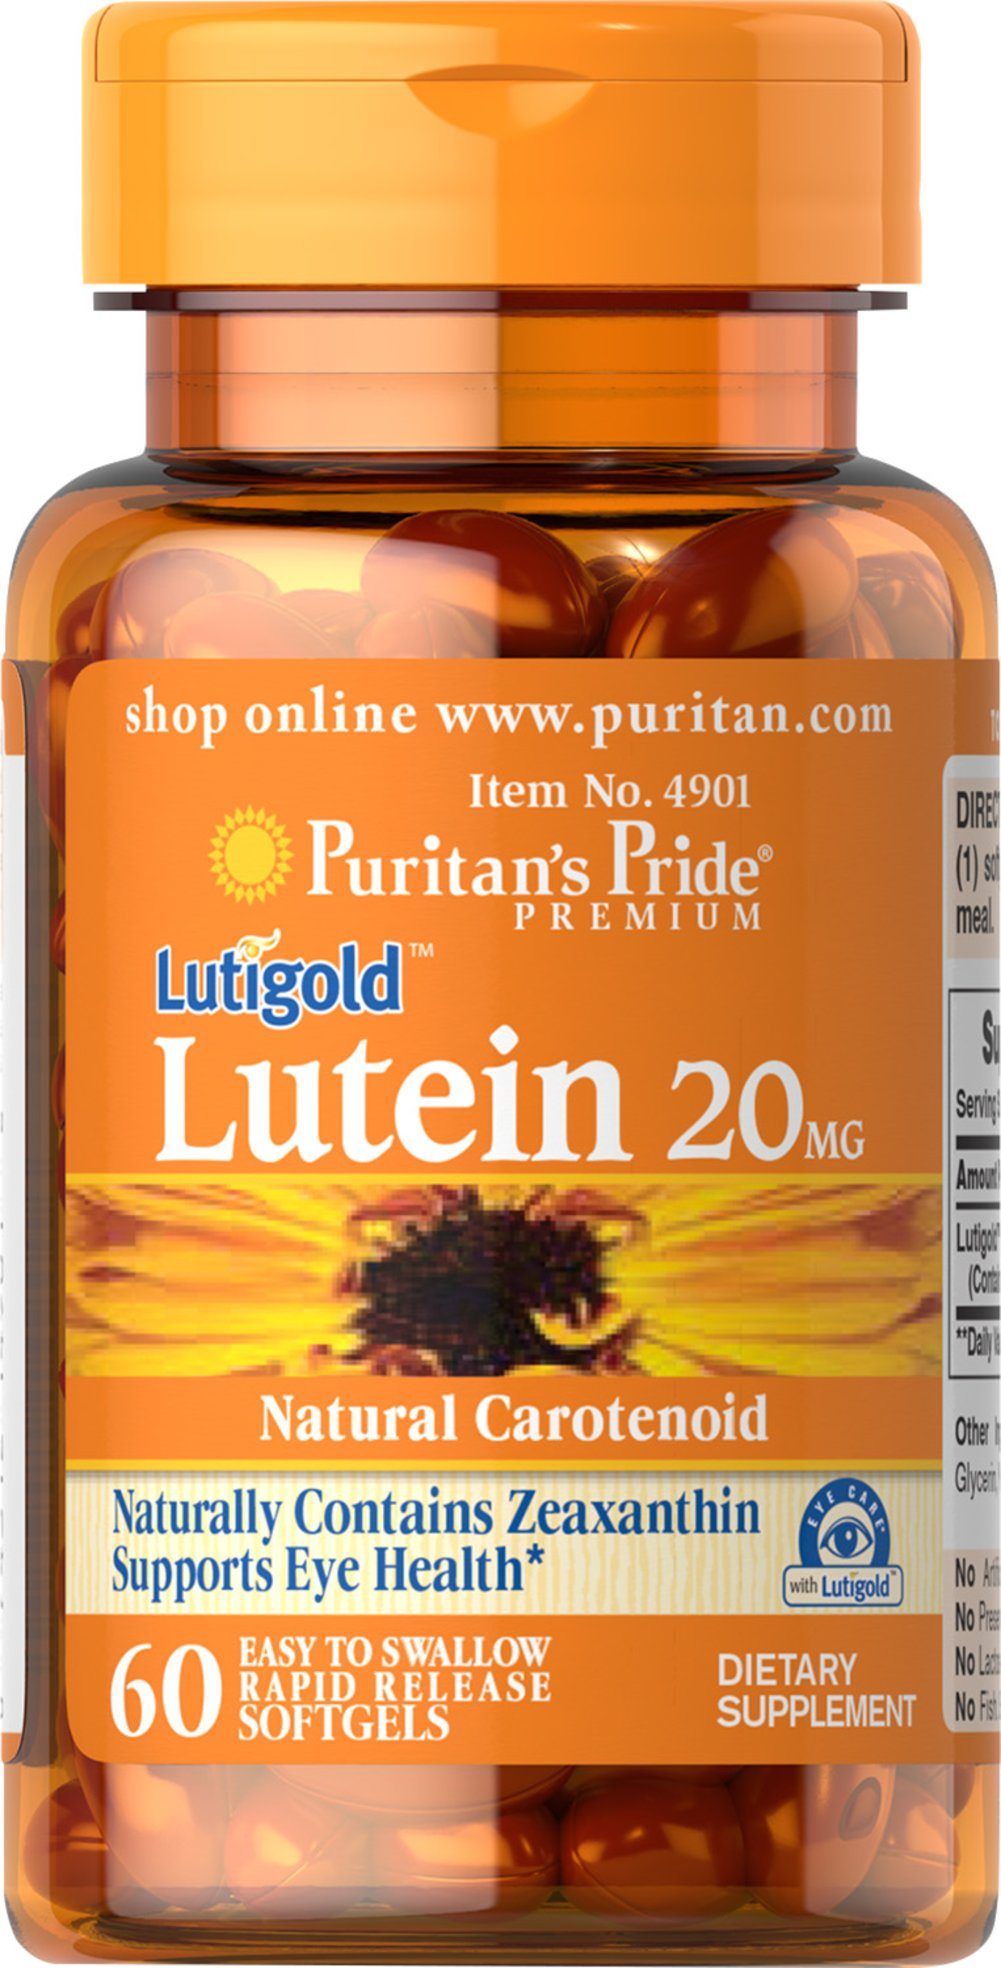 Lutein 20 mg with Zeaxanthin  60 Softgels 20 mg $6.79